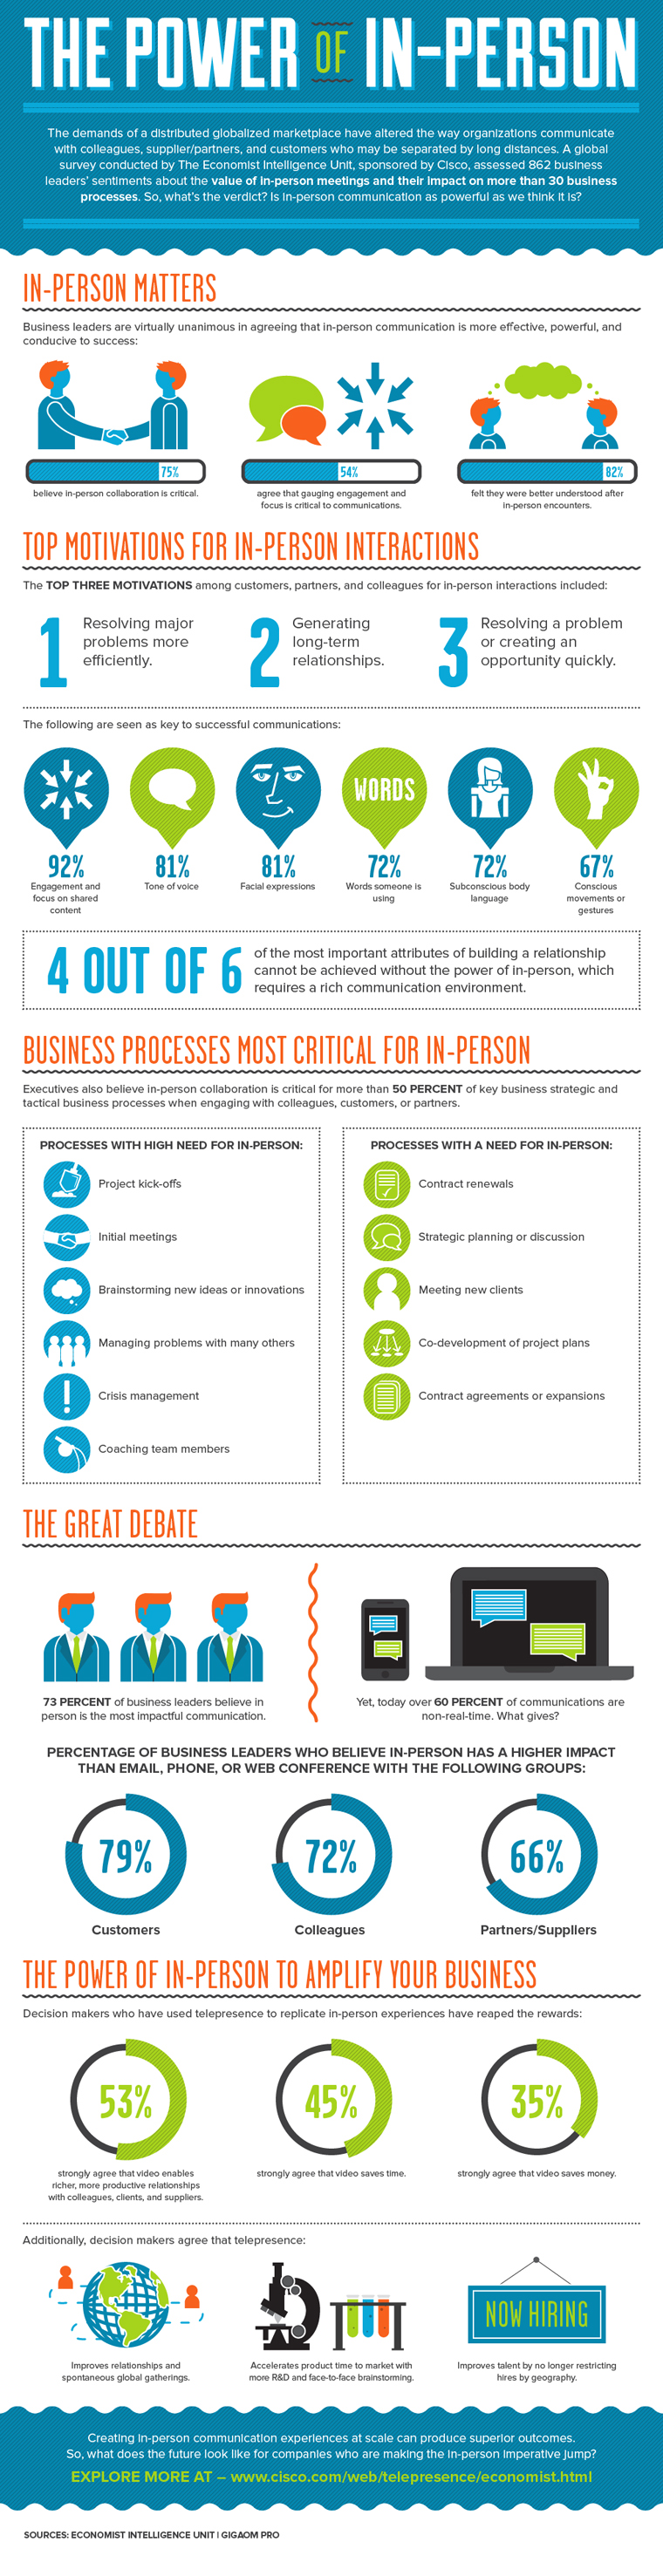 The power of in-person meetings